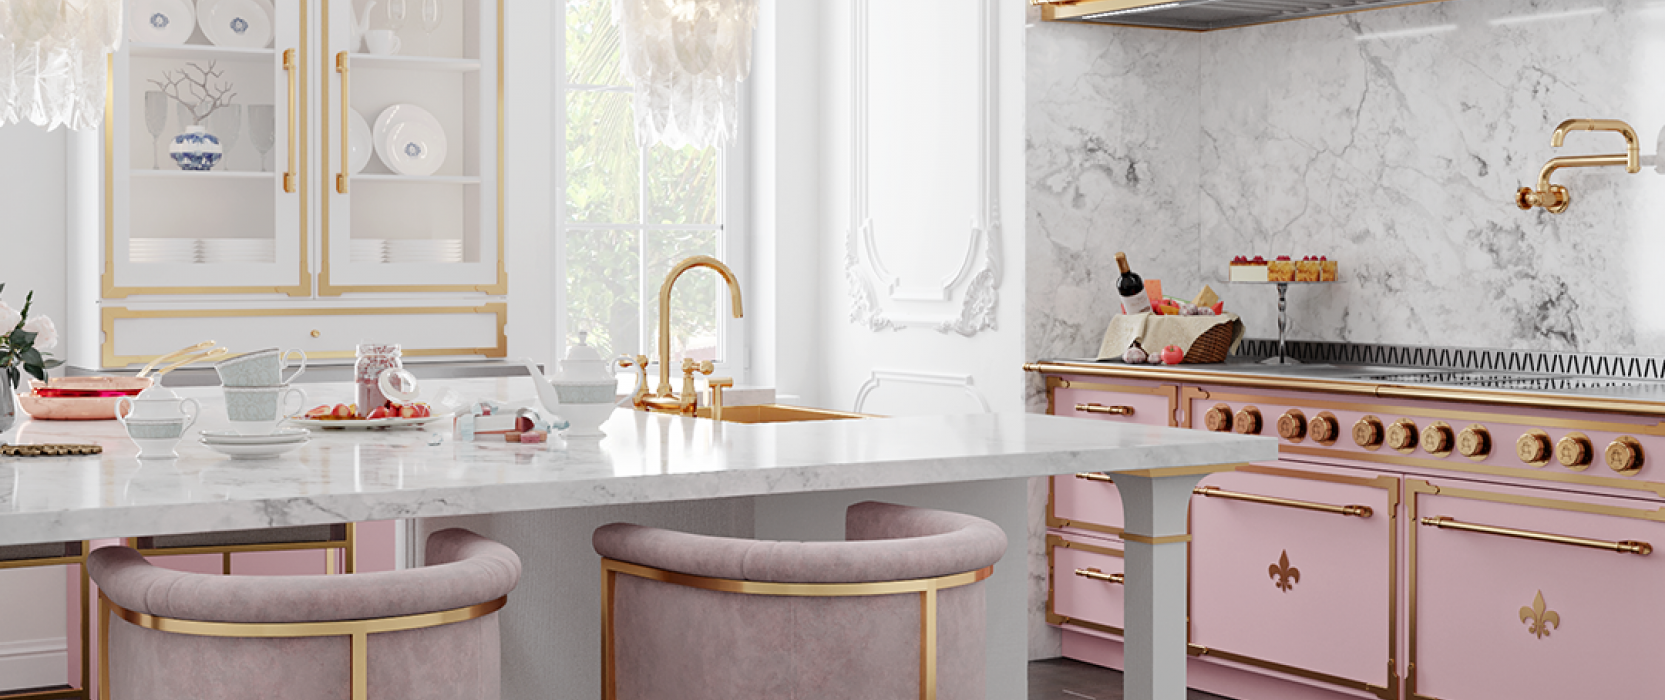 Pink L'atelier stove in bright white kitchen